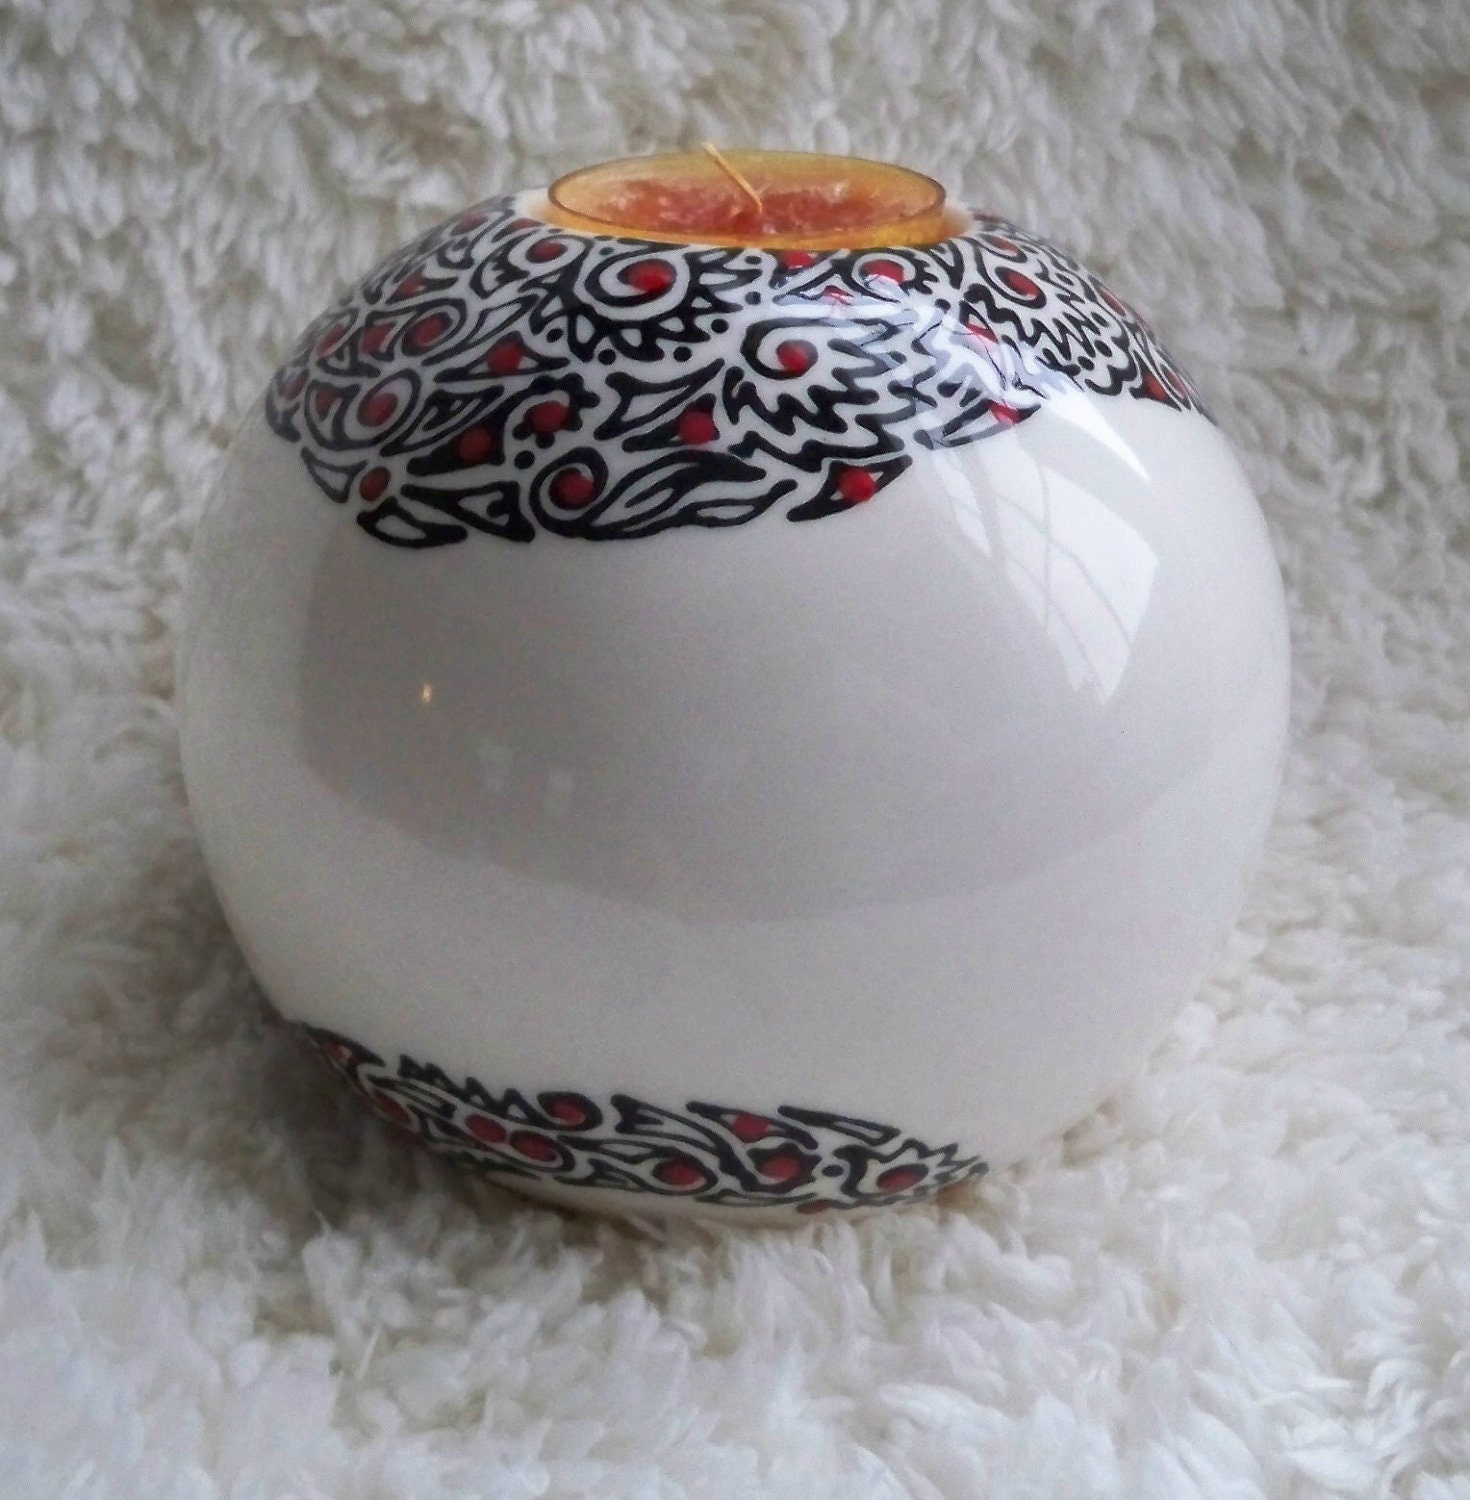 Spherical Ceramic Tea Light Holder With Abstract Designs - ellemardesigns